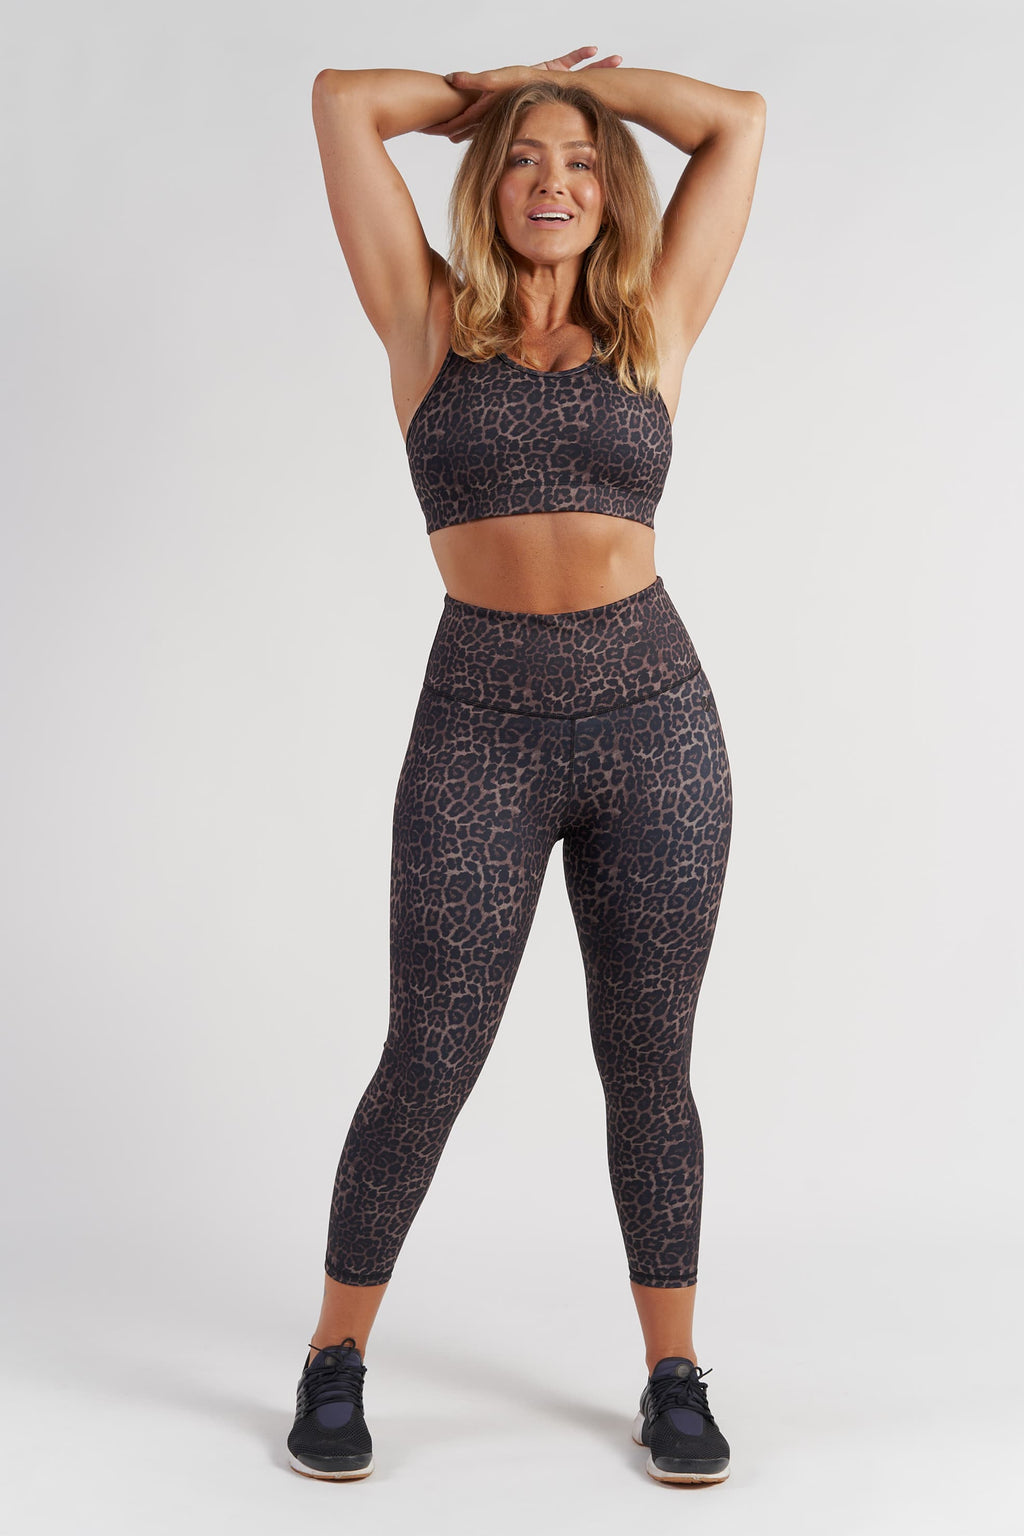 Essential 7/8 Length Tight - Bronze Leopard from Active Truth USA